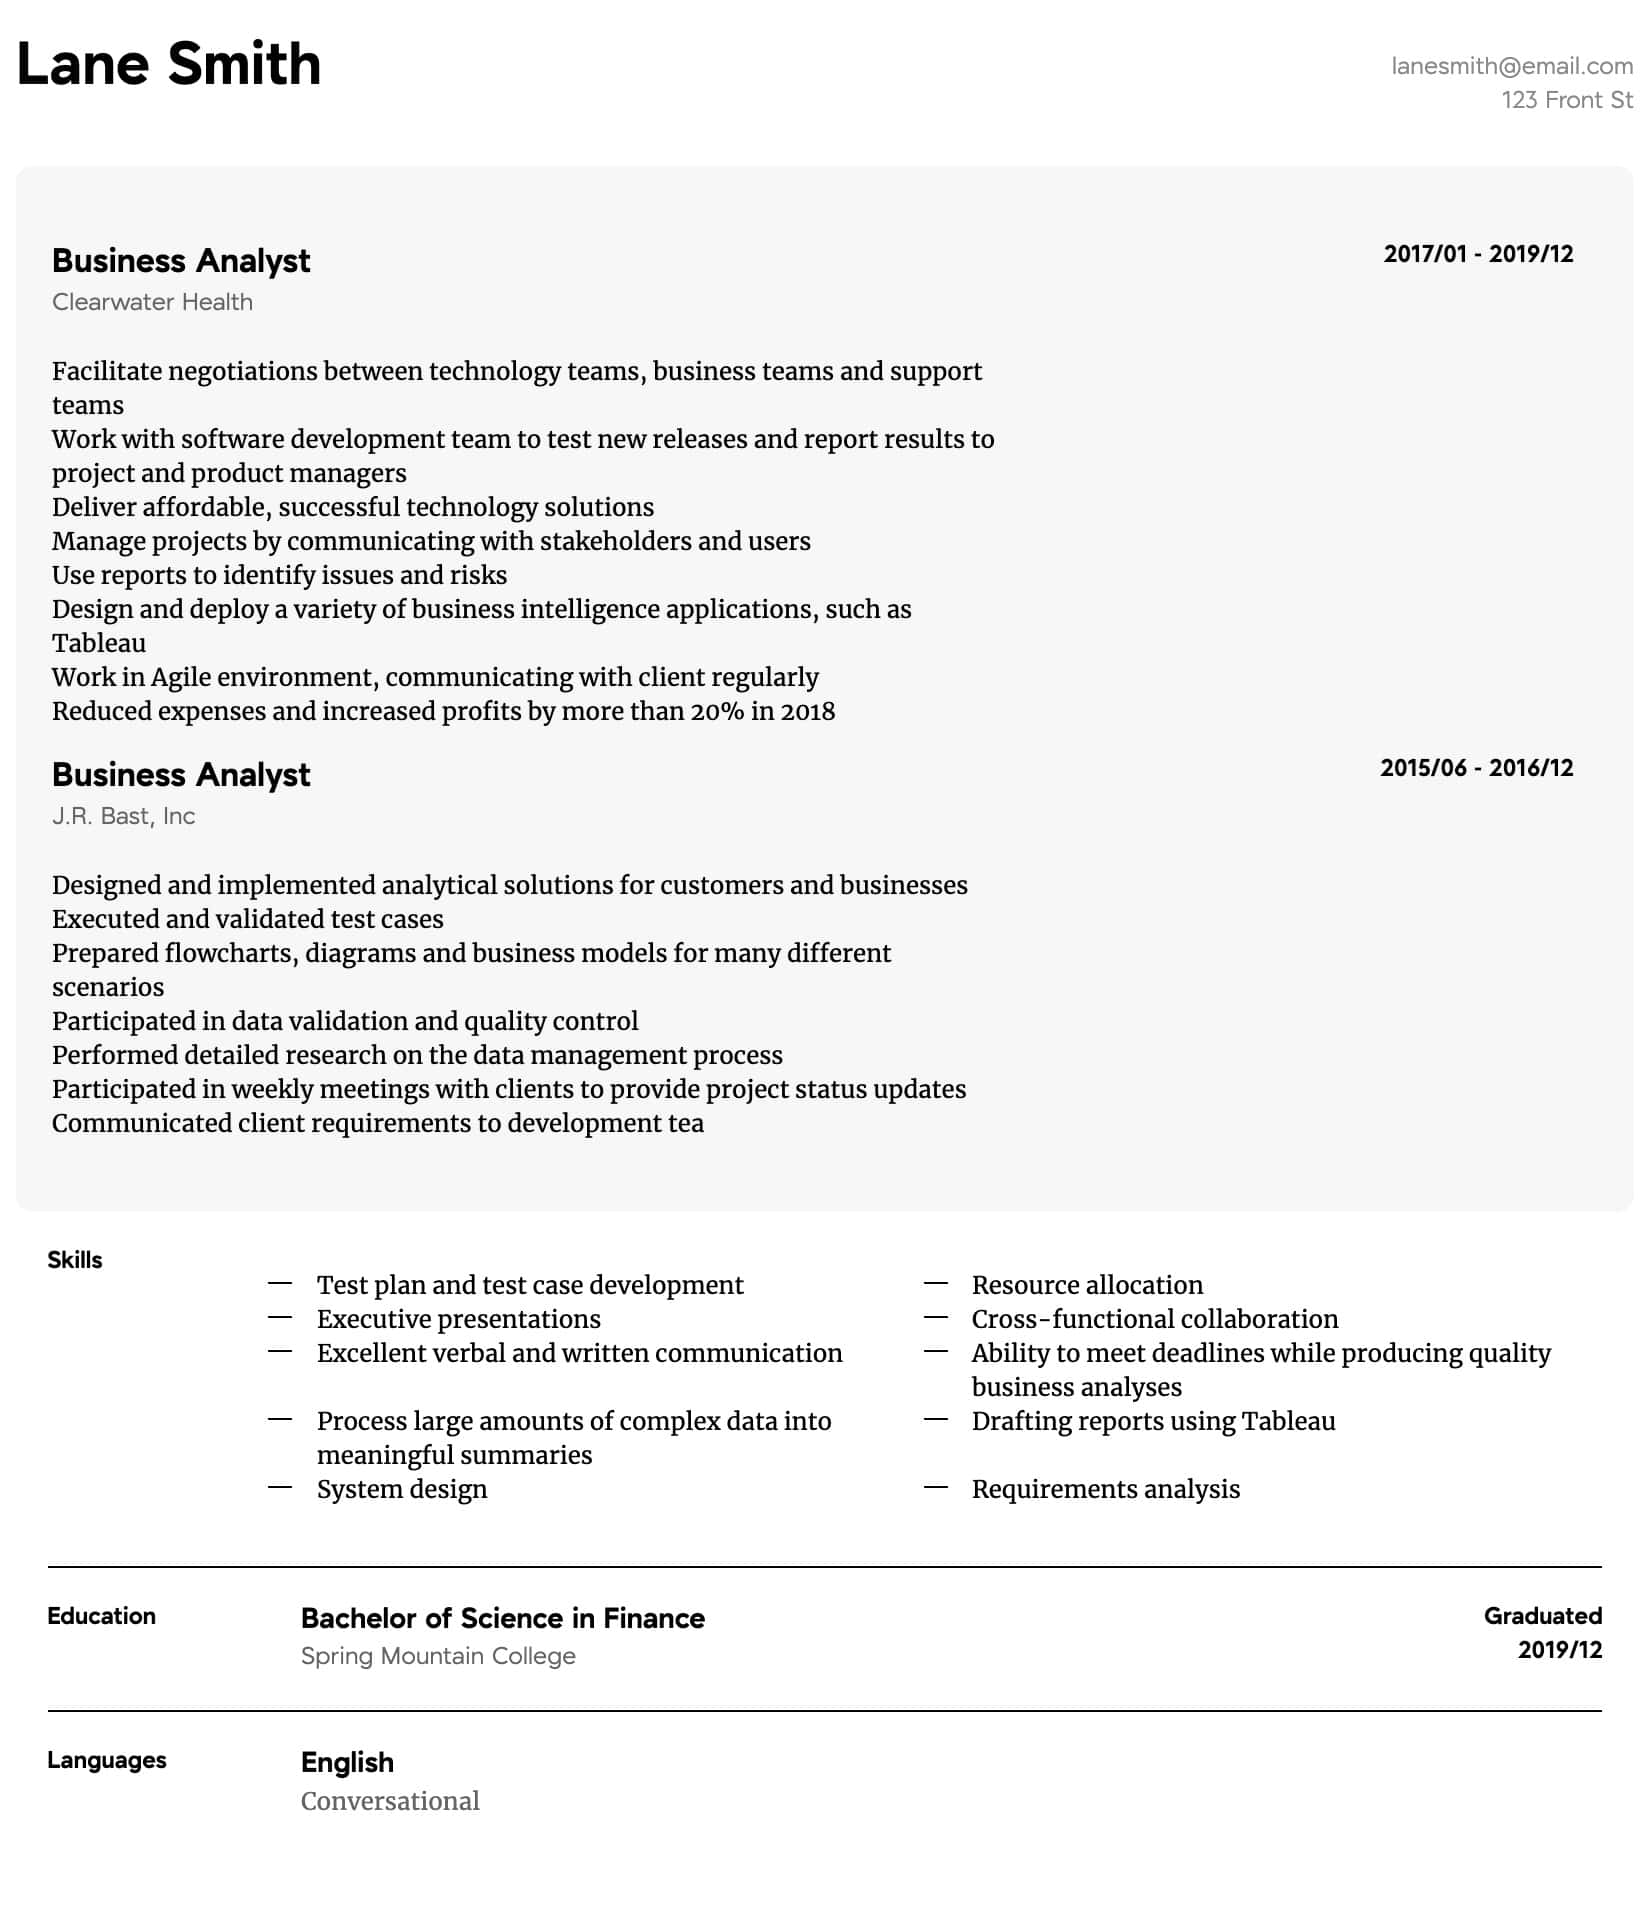 business analyst resume samples all experience levels resumecom data entry sample Resume Data Entry Analyst Resume Sample